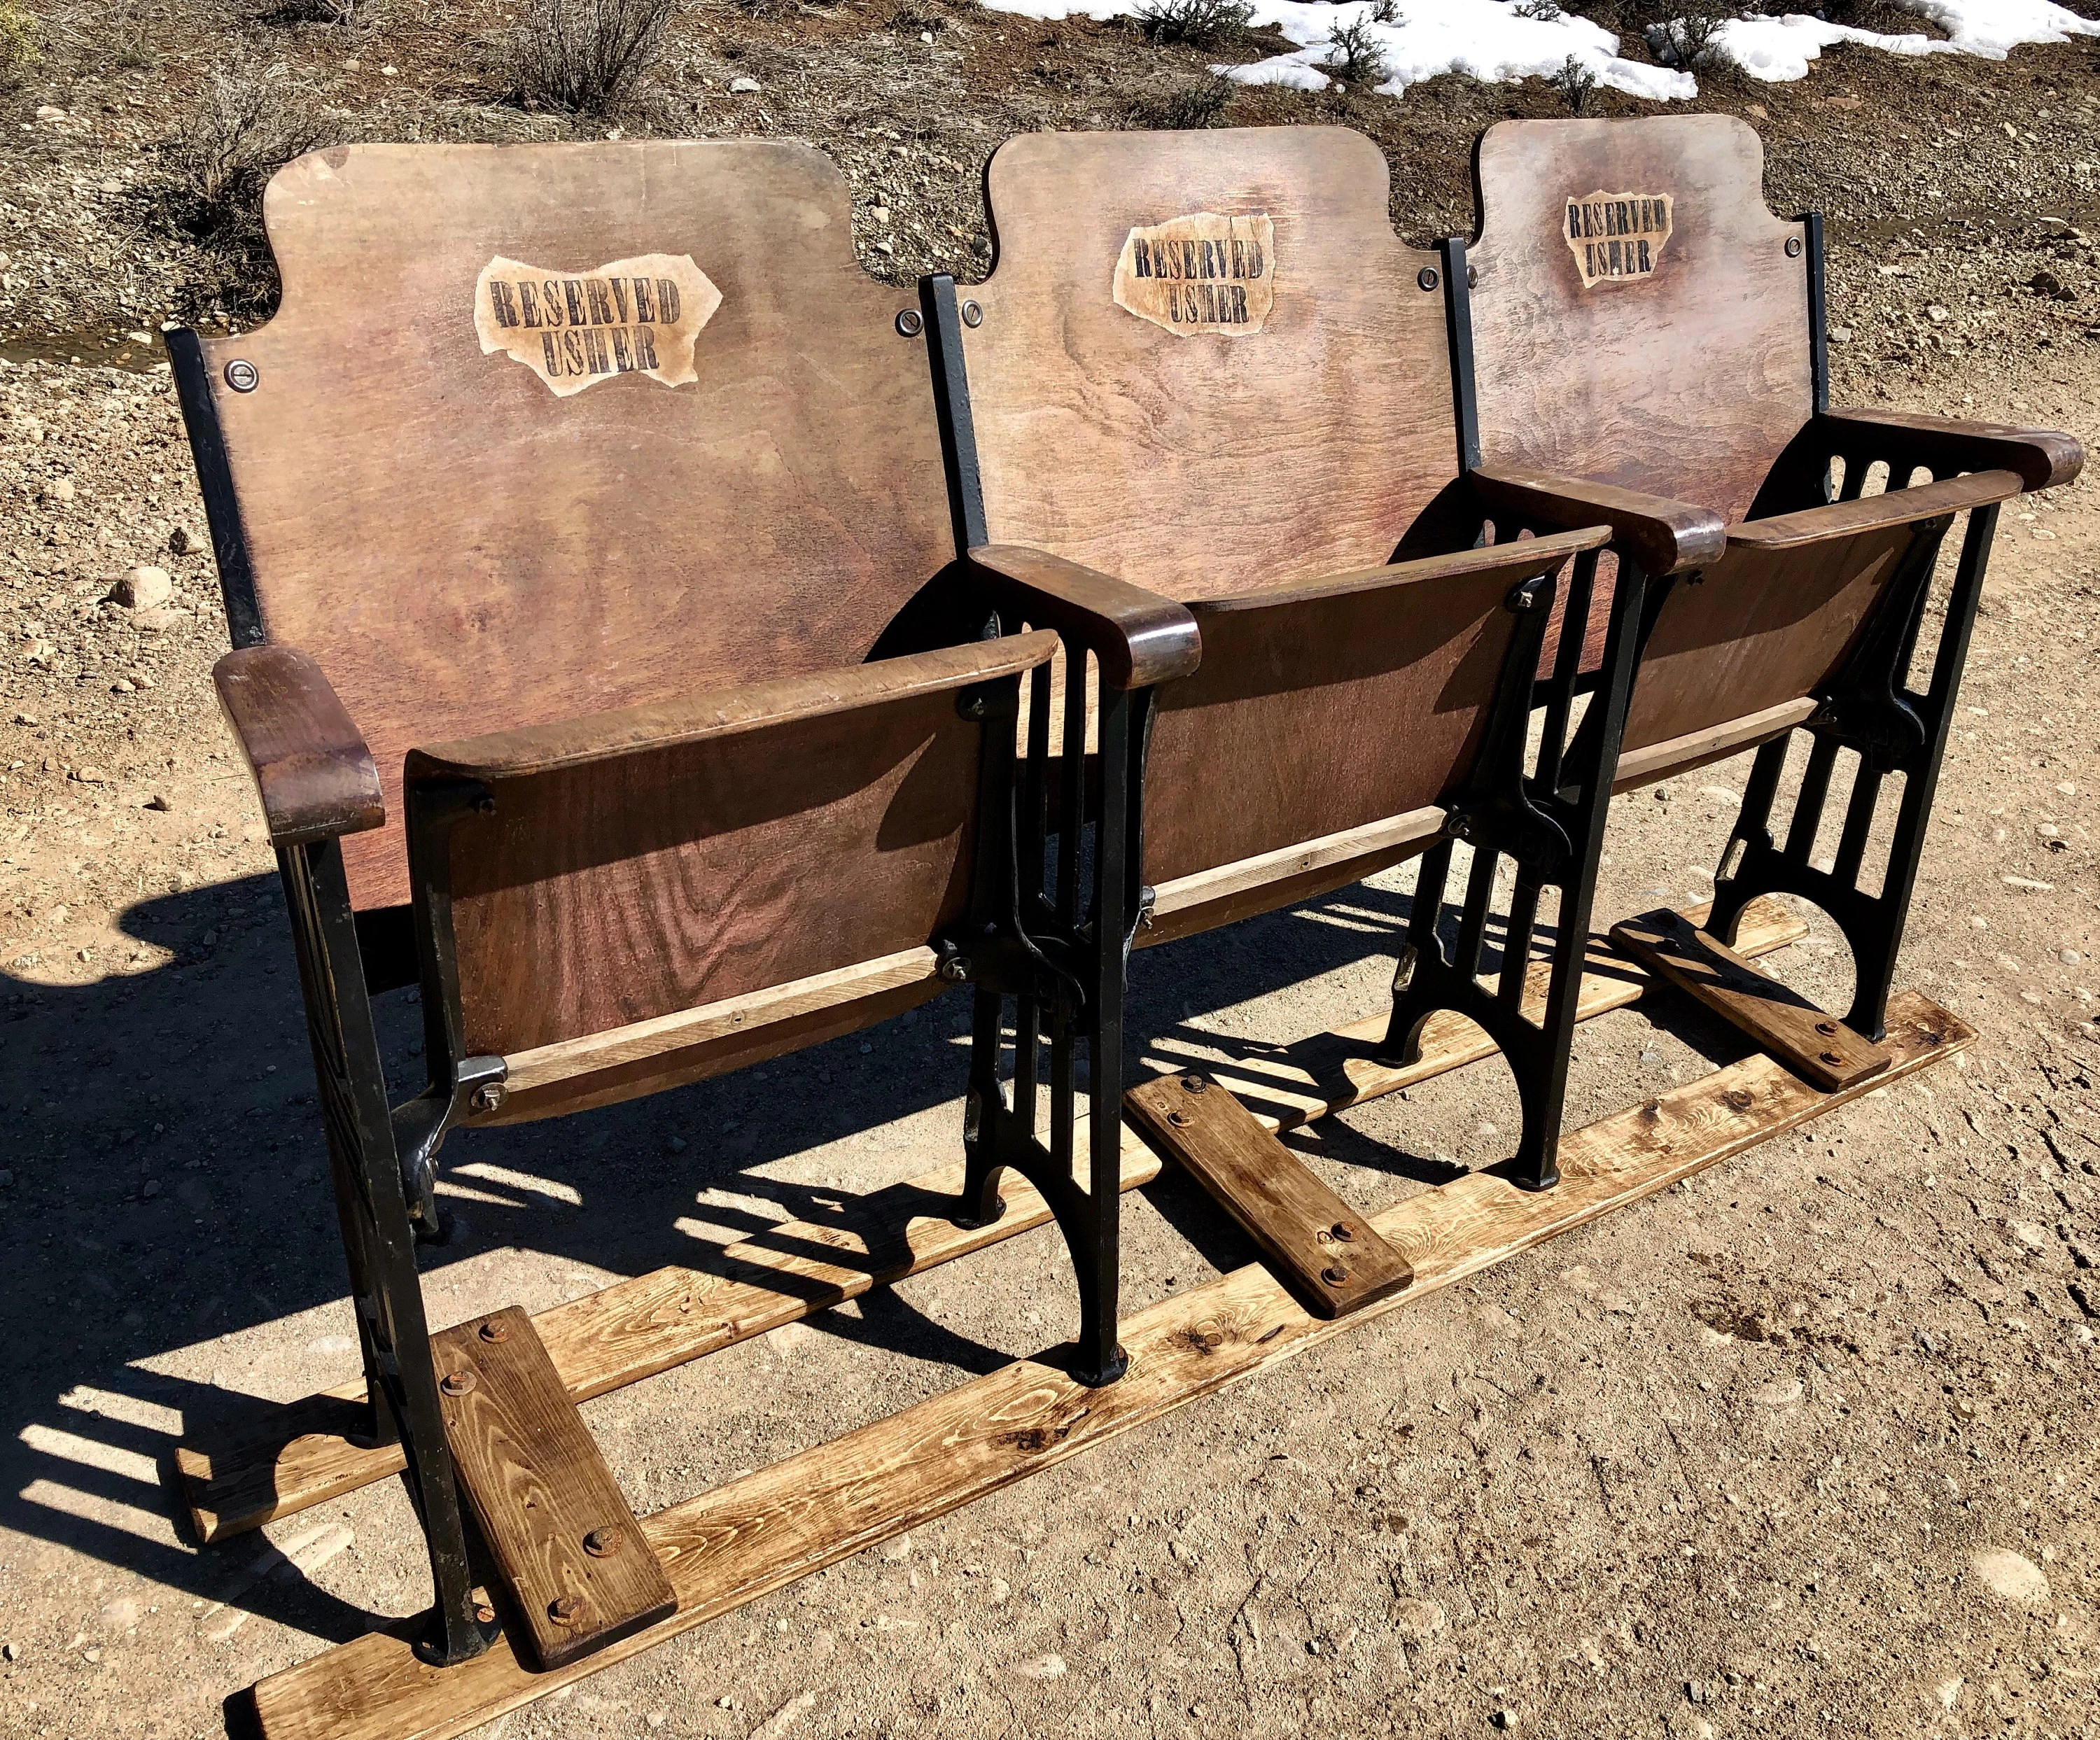 Pew Chairs Rare Old Church Chairs Pew Old Theatre Chairs Set Of Three Theater Chairs Theater Seats Wood Auditorium Seats Cinema Chairs Movie Seats